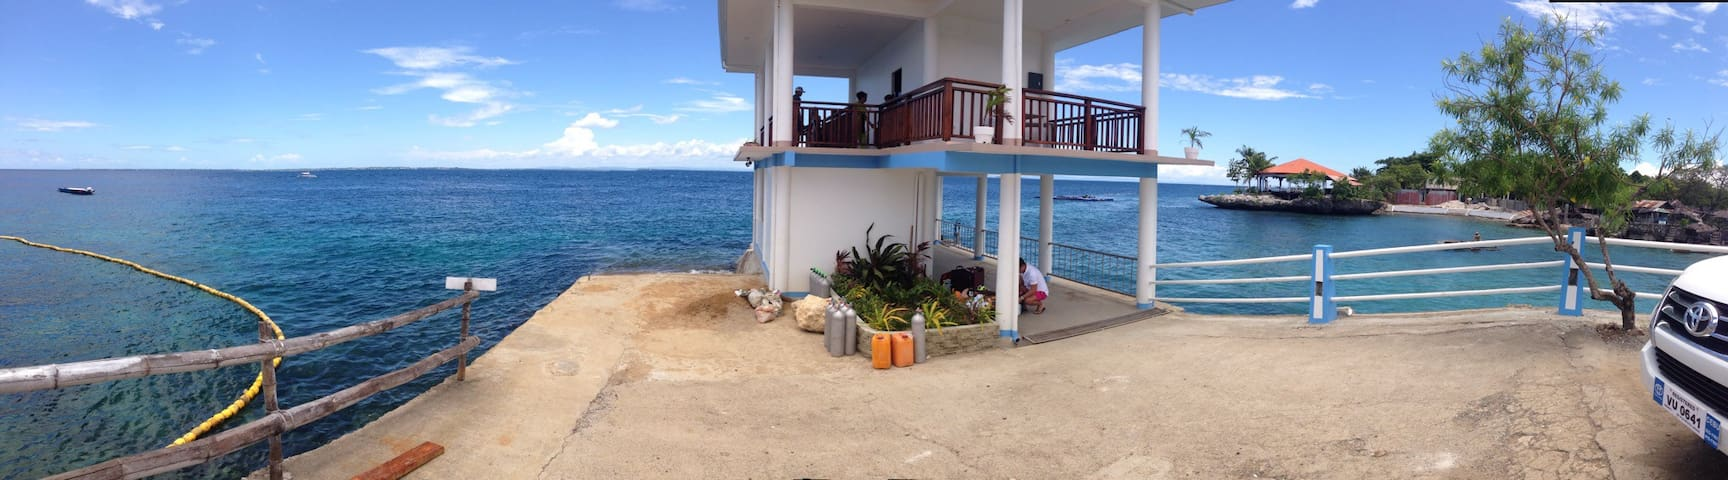 Summer Beach House by Blue Waters - Lapu-Lapu City - Dom